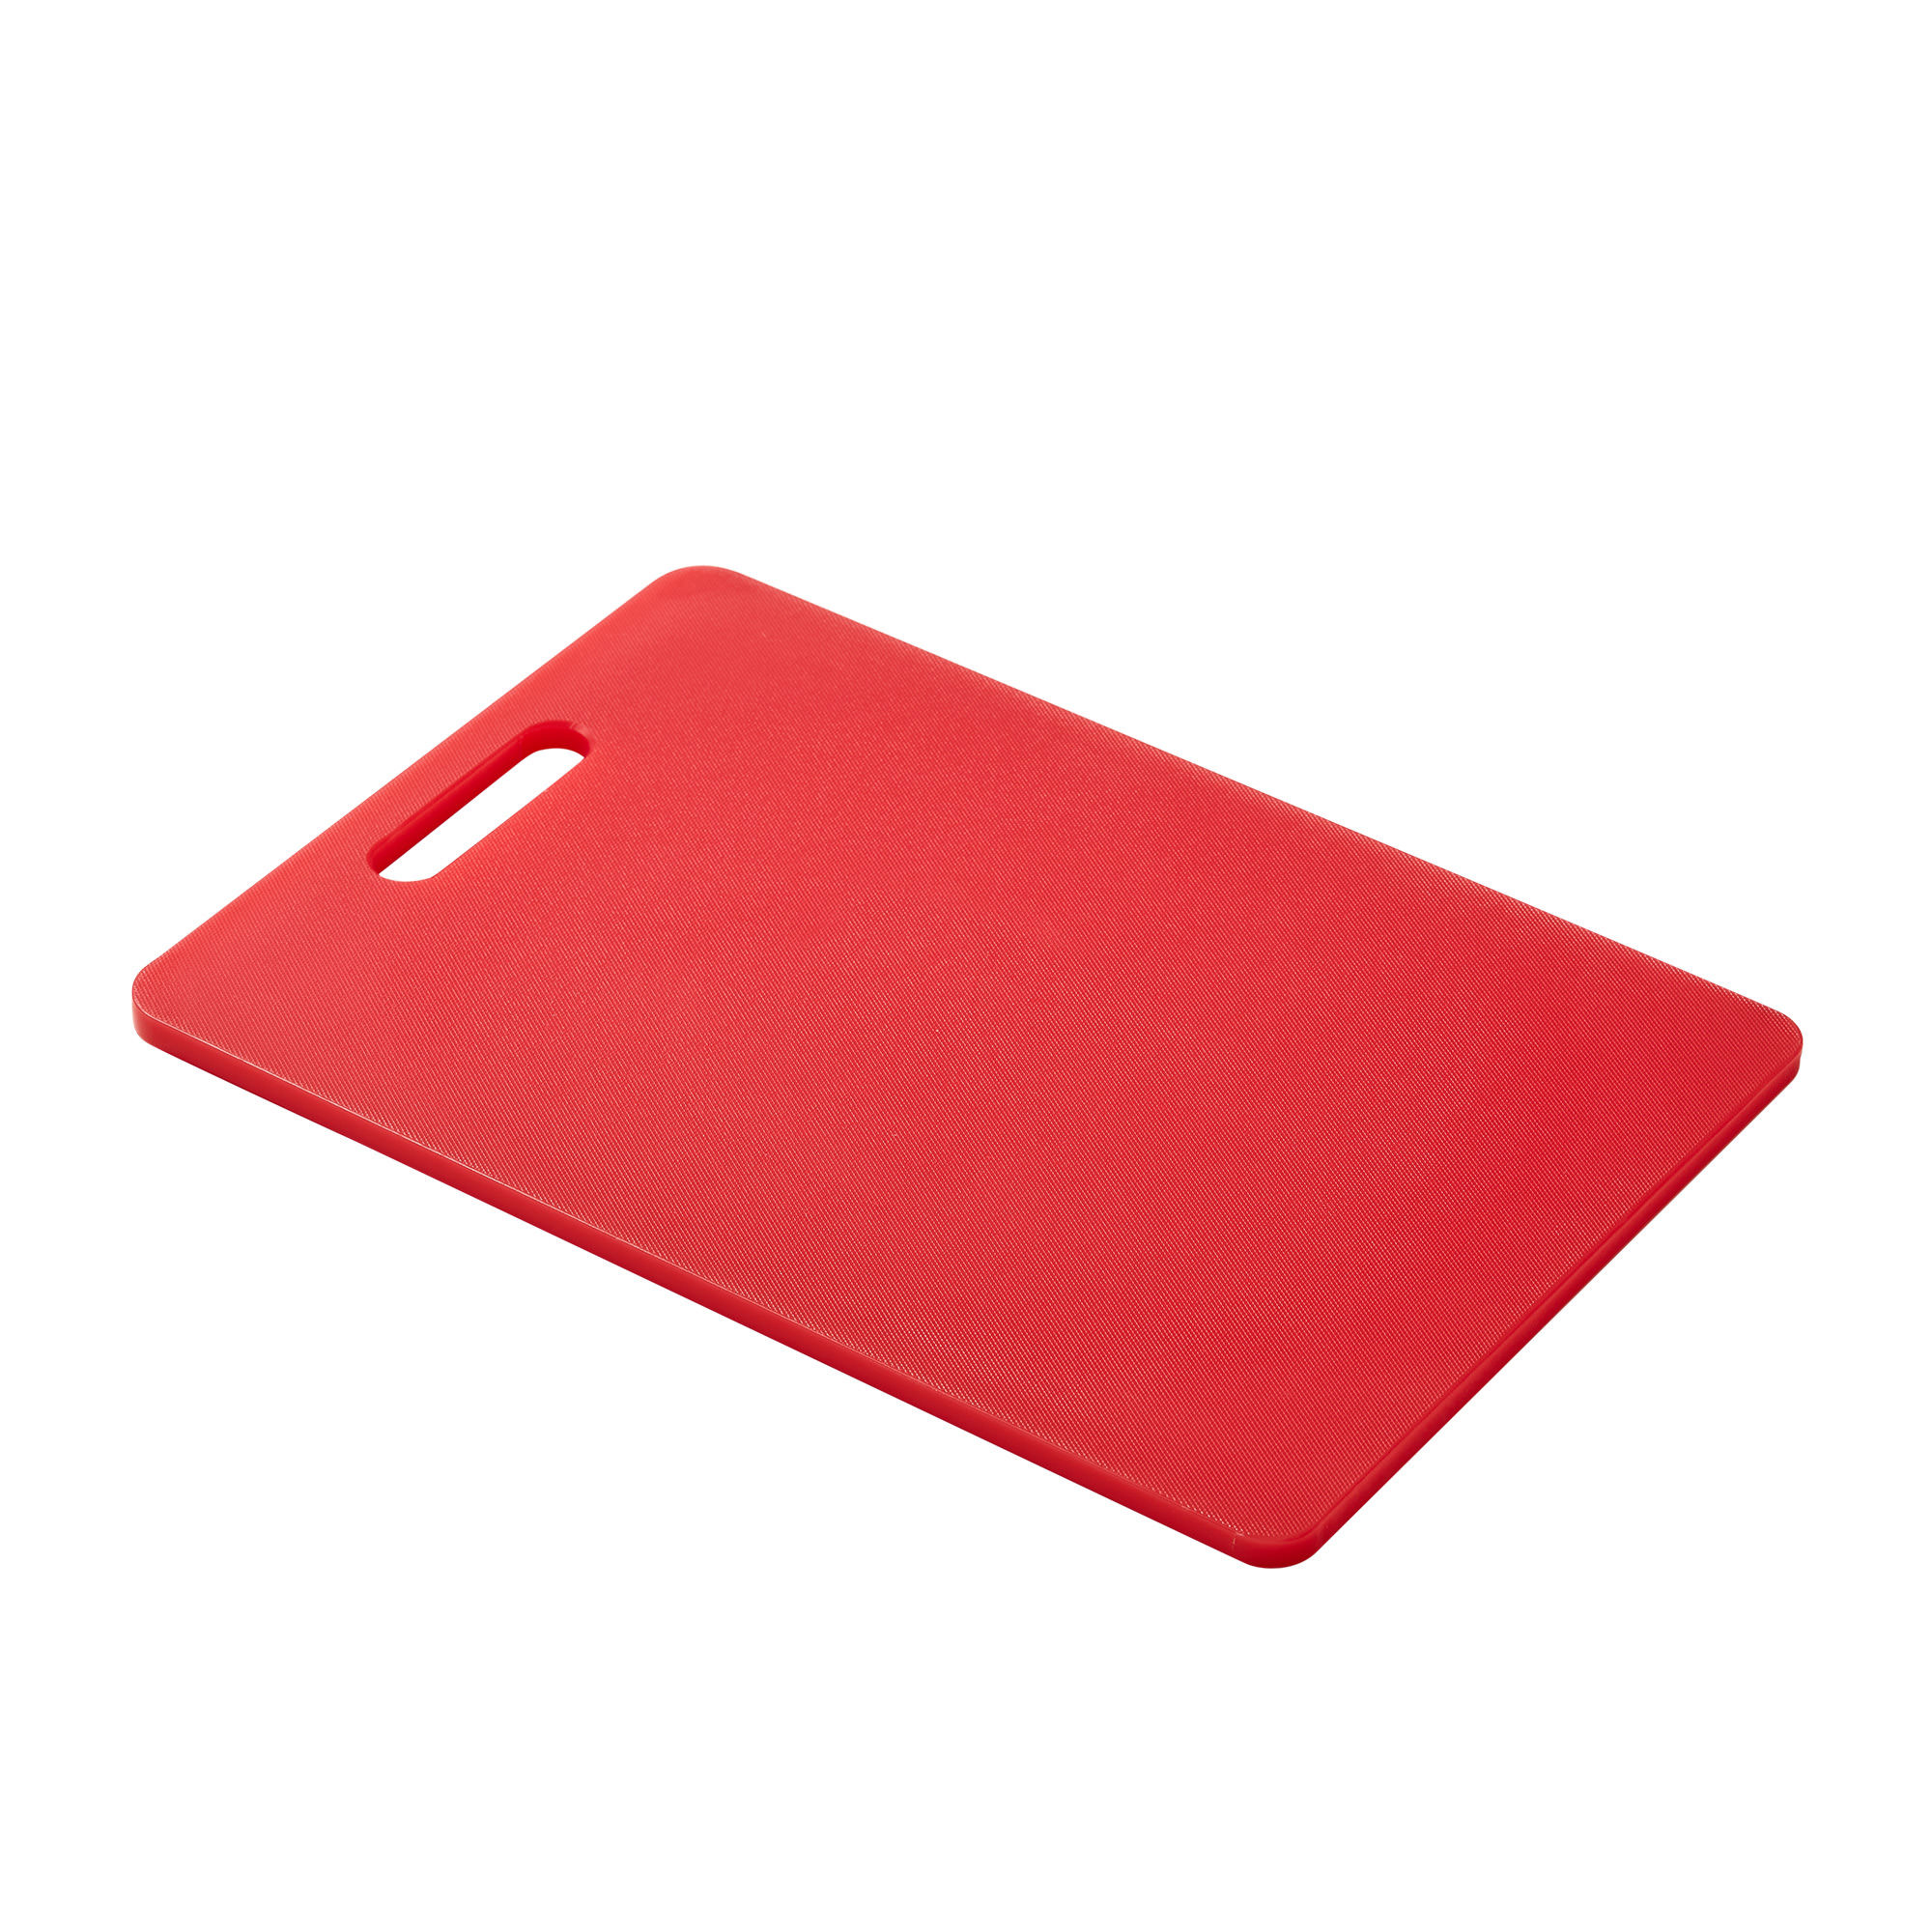 Kitchen Pro Classic Cutting Board 43x30x1.2cm Red